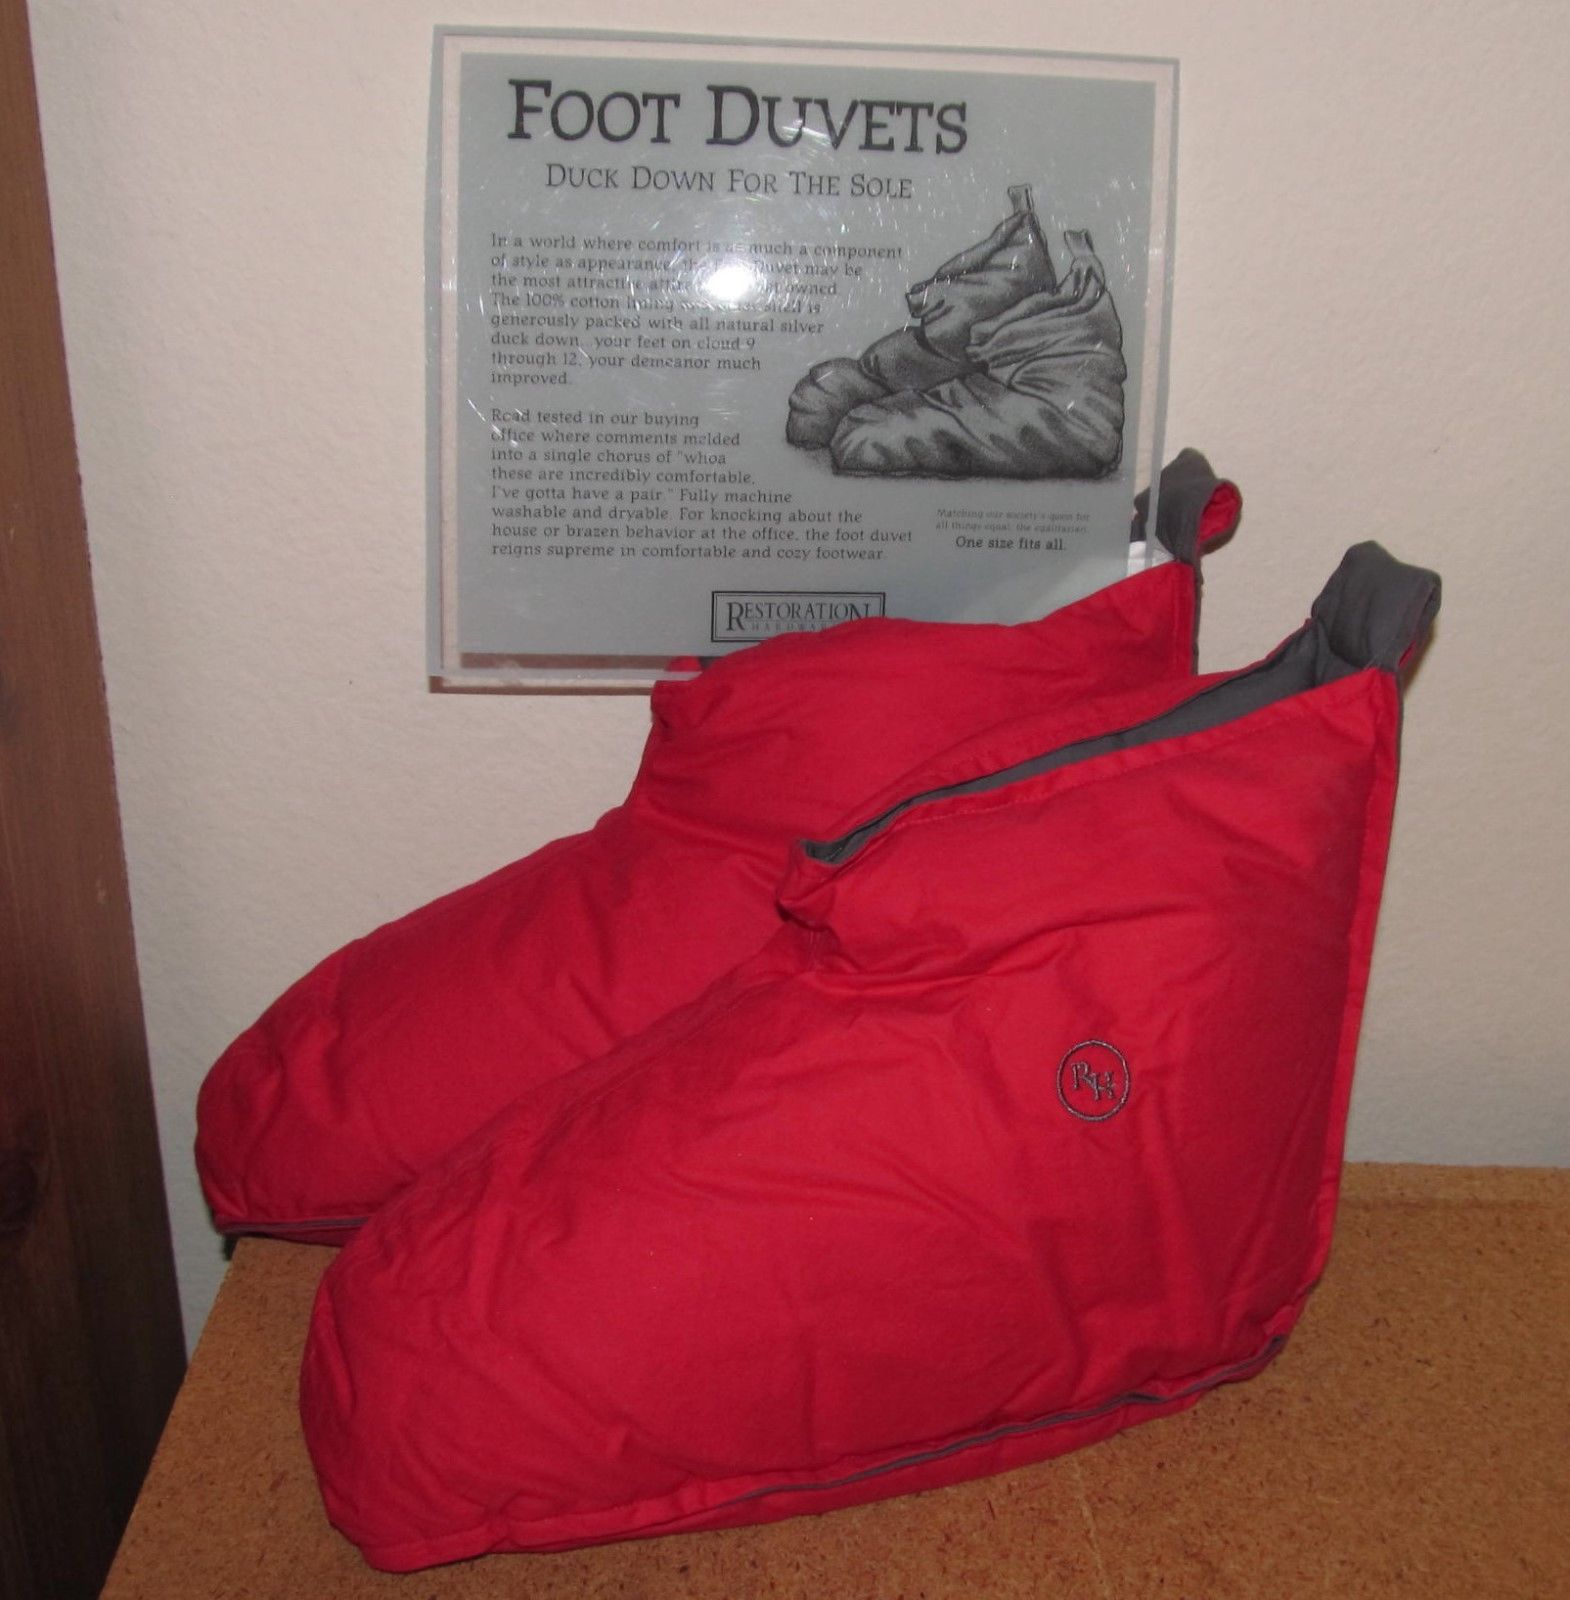 New Restoration Hardware Duck Down Foot Duvets Slippers Red One Size Fits All